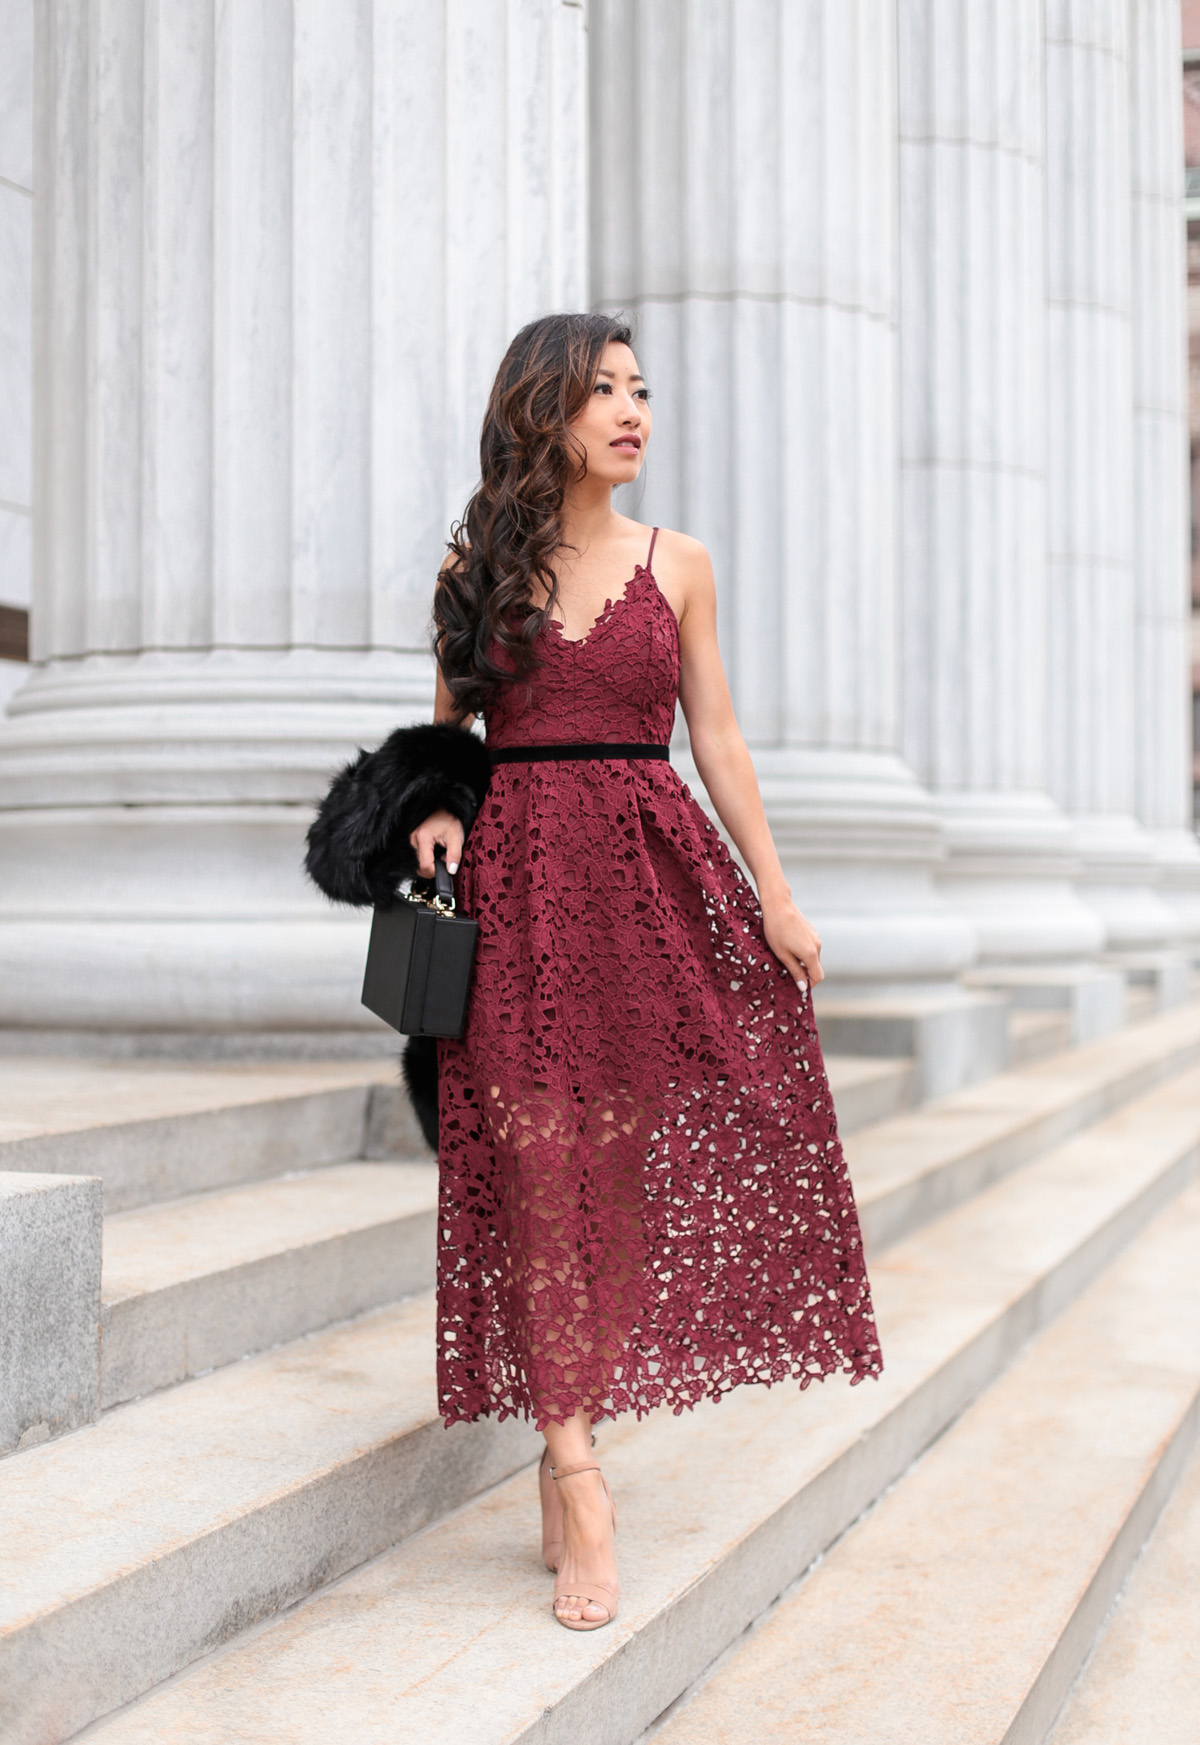 Burgundy Maxi // Holiday lace dress + faux fur scarf